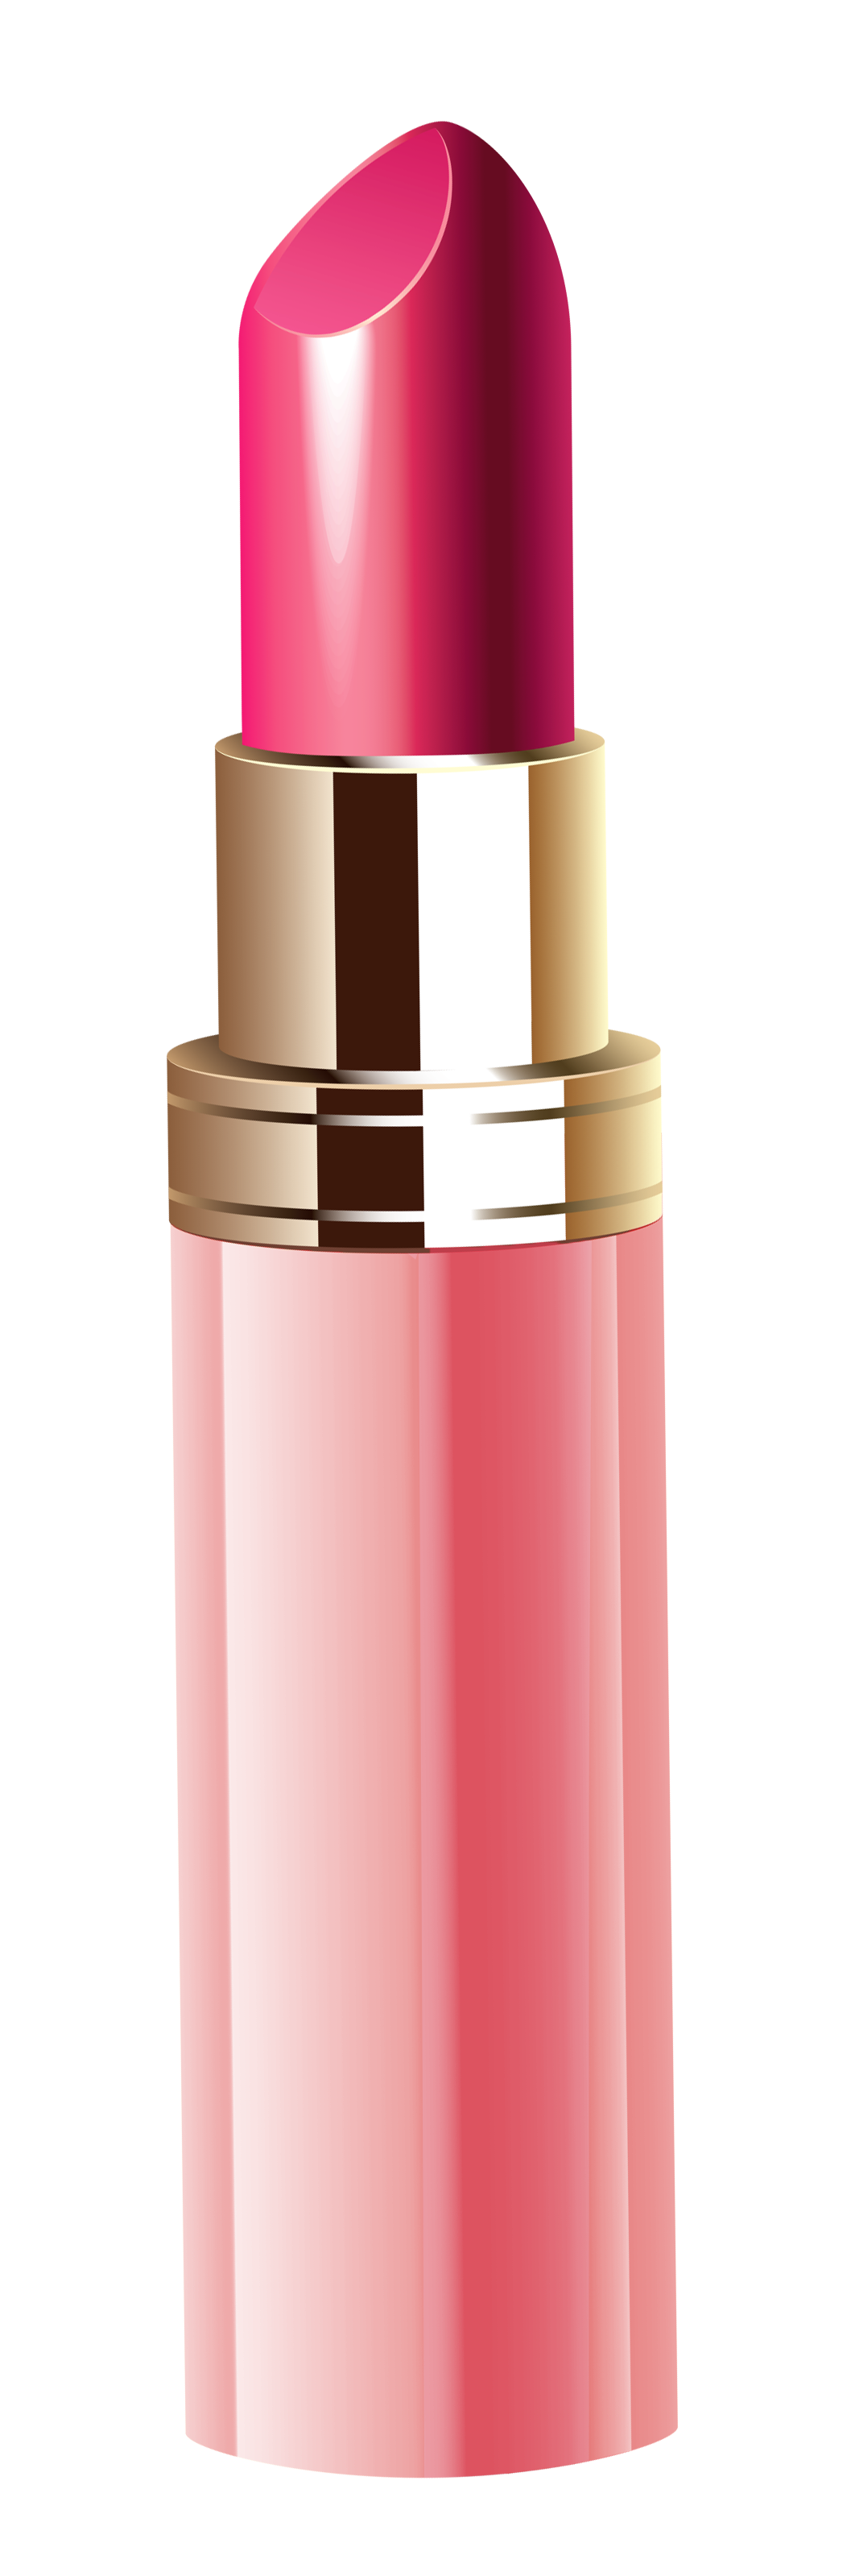 Pink Lipstick PNG Clipart Image